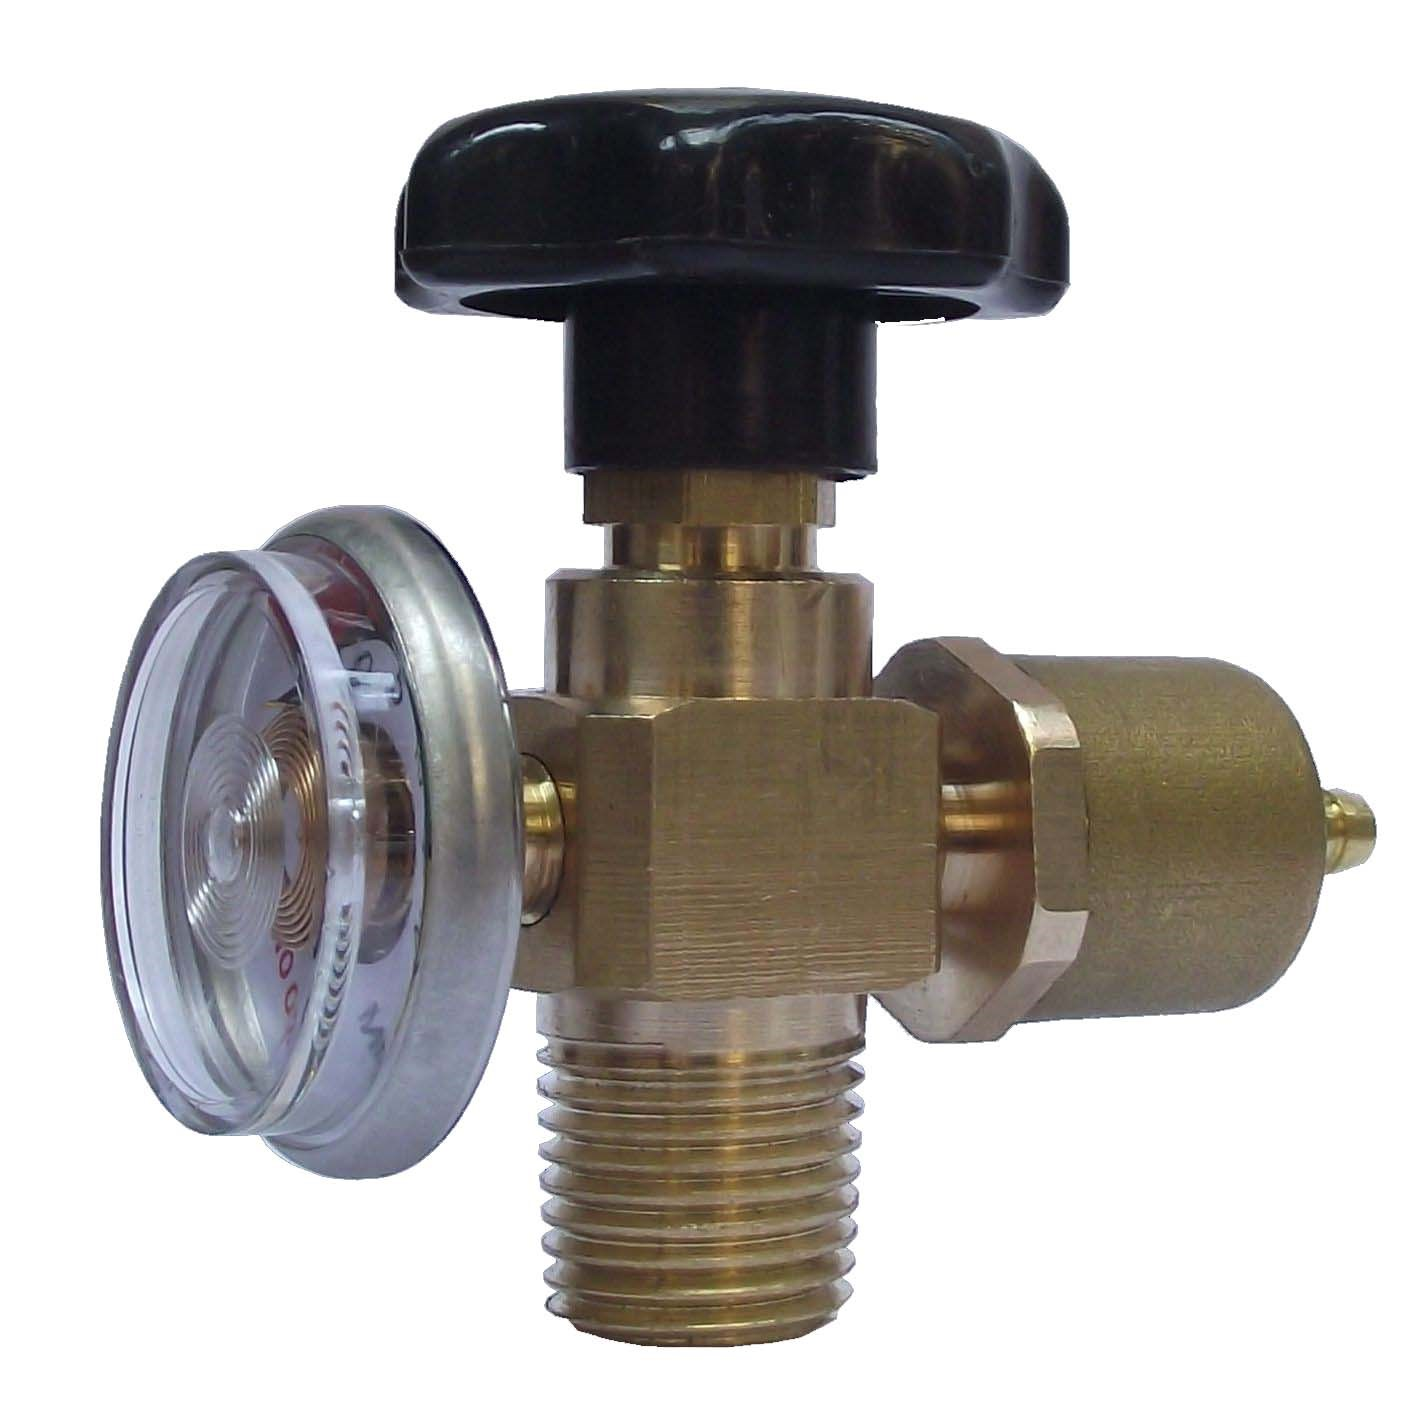 New type all copper oxygen valve portable welding equipment 2 liter small cylinder special pressure reducing valve switch across the bridge mail